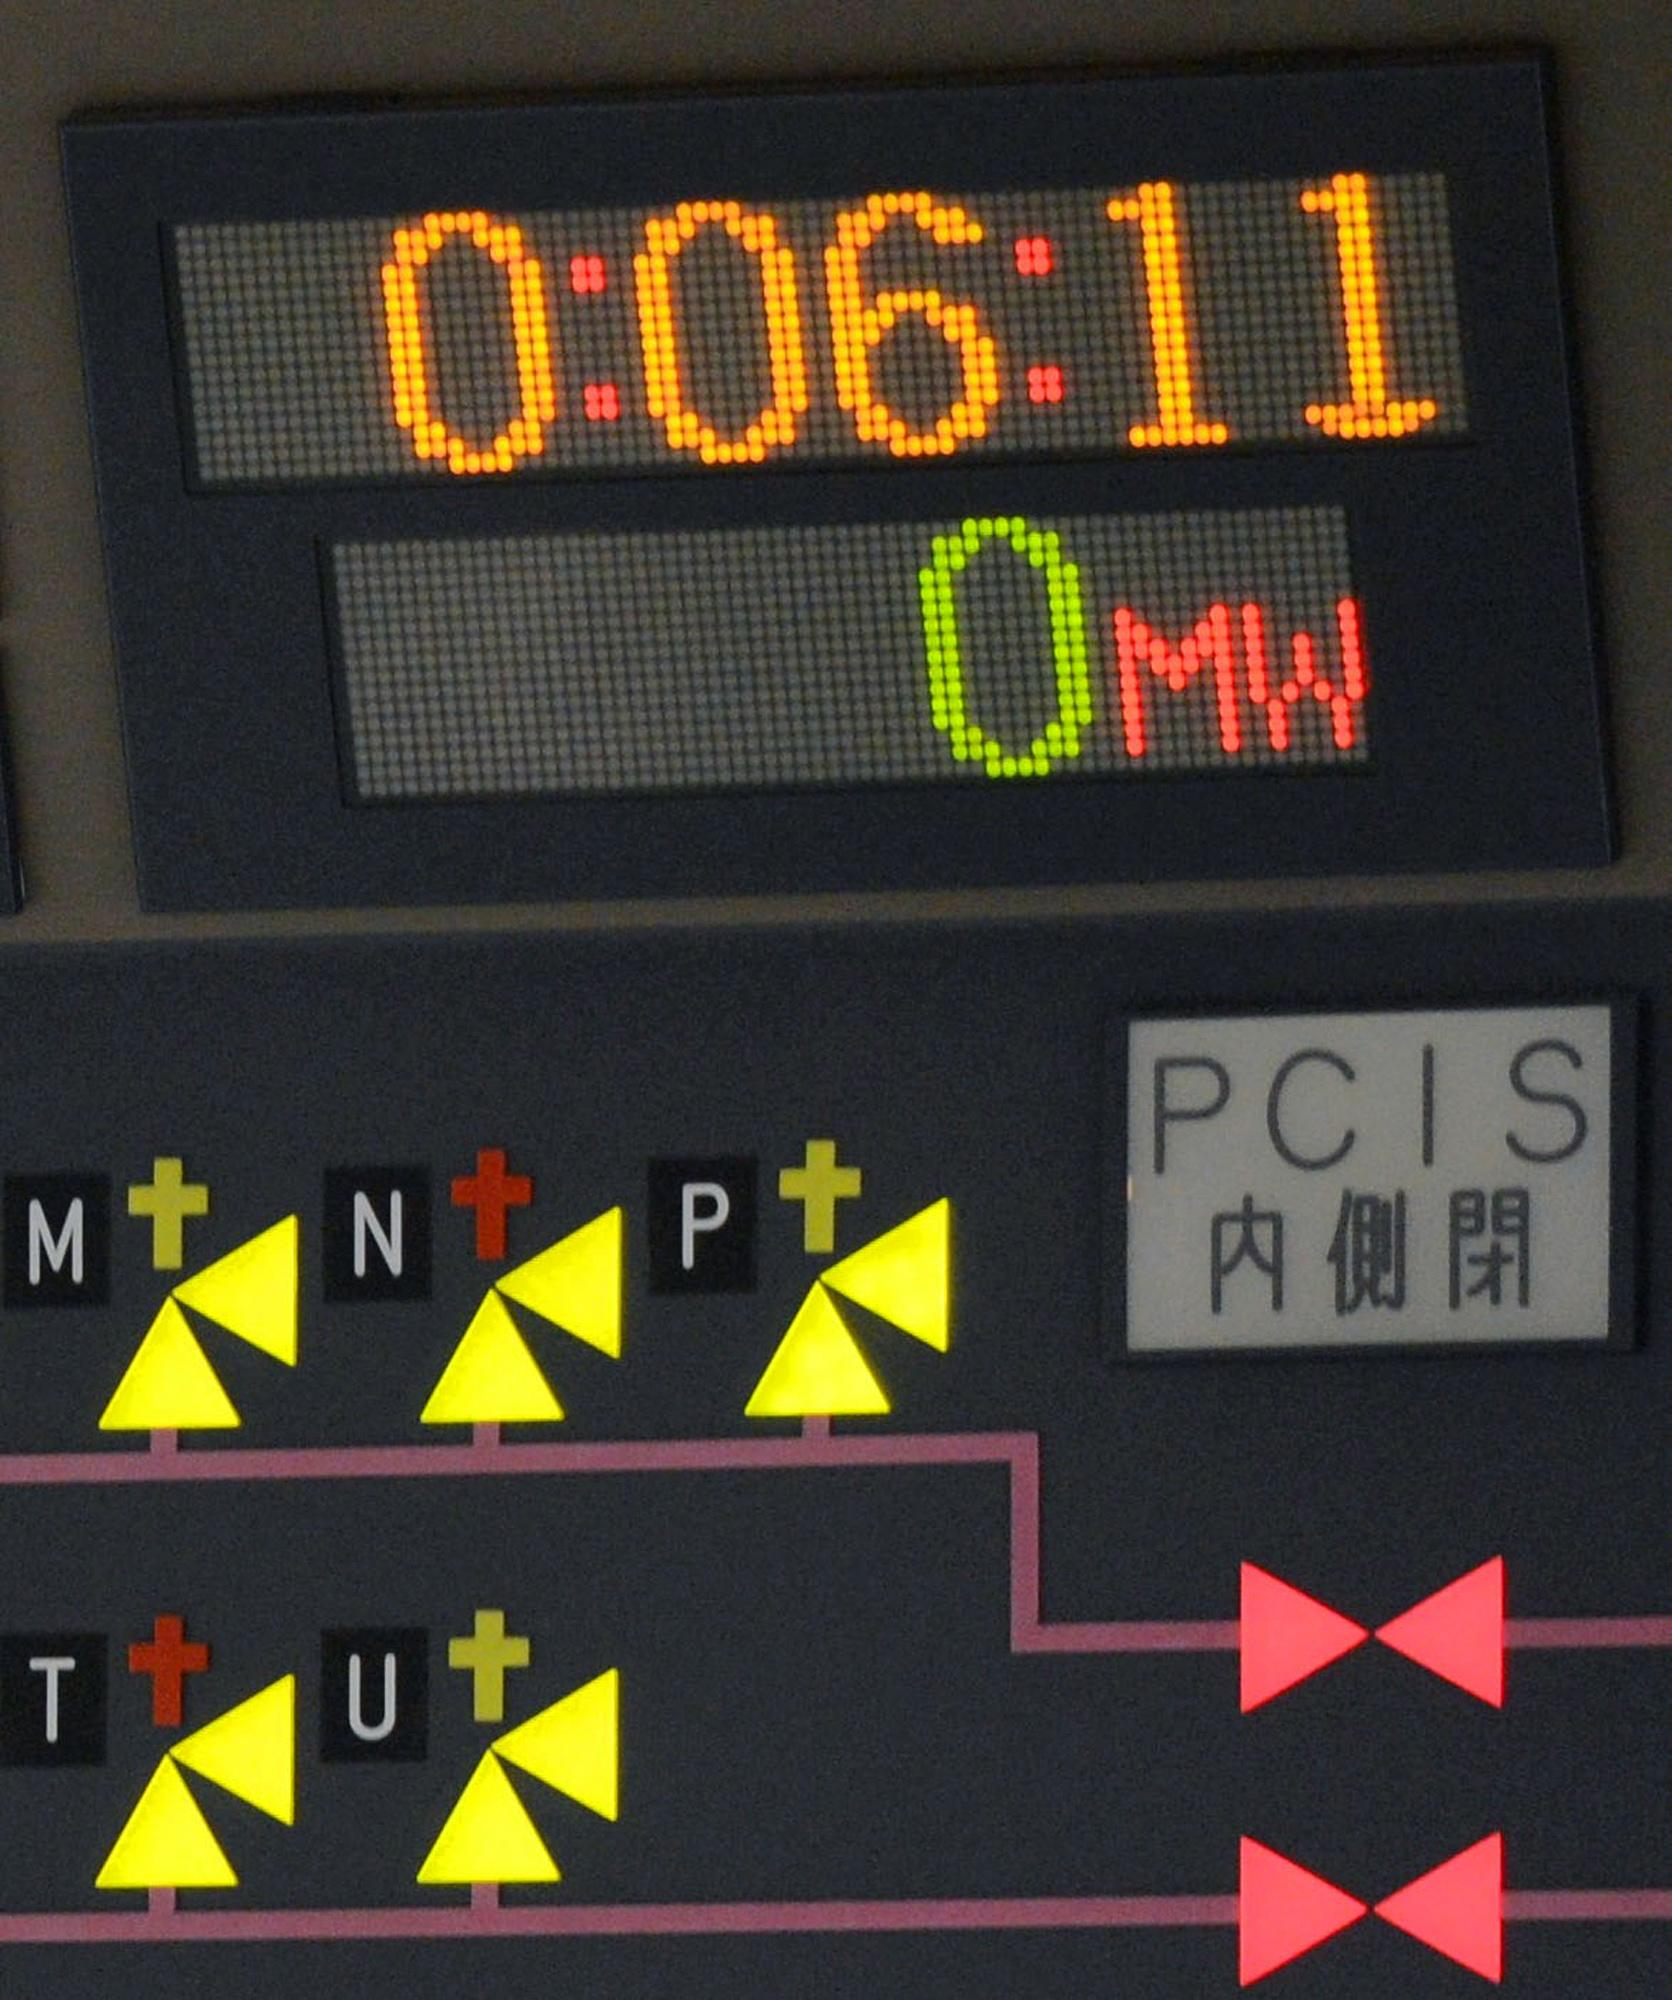 A monitor shows the generating power at 0 inside the central control room of the No. 6 reactor at the Tokyo Electric Power Company's nuclear power plant in Kariwa village in Kashiwazaki City, Japan, northwest of Tokyo early Monday, March 26, 2012, after it was taken off line. The nuclear reactor was taken off line for maintenance on Monday, leaving the country with only one of its 54 reactors operational following last year's devastating earthquake and tsunami. (AP Photo/Kyodo News) JAPAN OUT, MANDATORY CREDIT, NO LICENSING IN CHINA, HONG KONG, JAPAN, SOUTH KOREA AND FRANCE